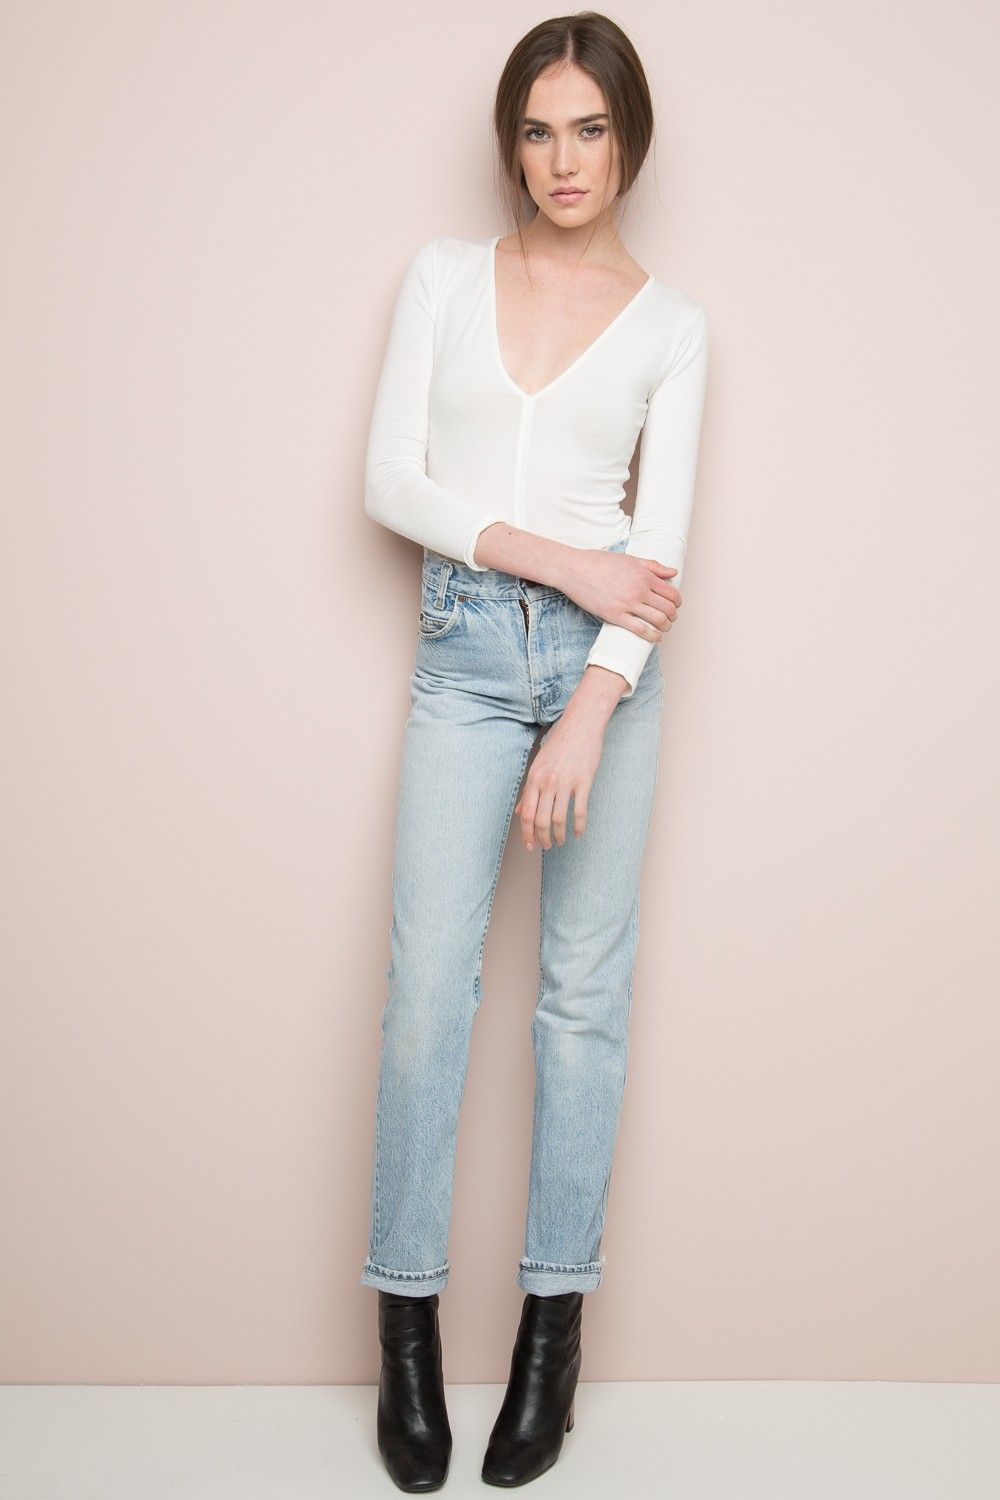 Brandy ♥ Melville | Harrison Top - Long Sleeves - Tops - Clothing